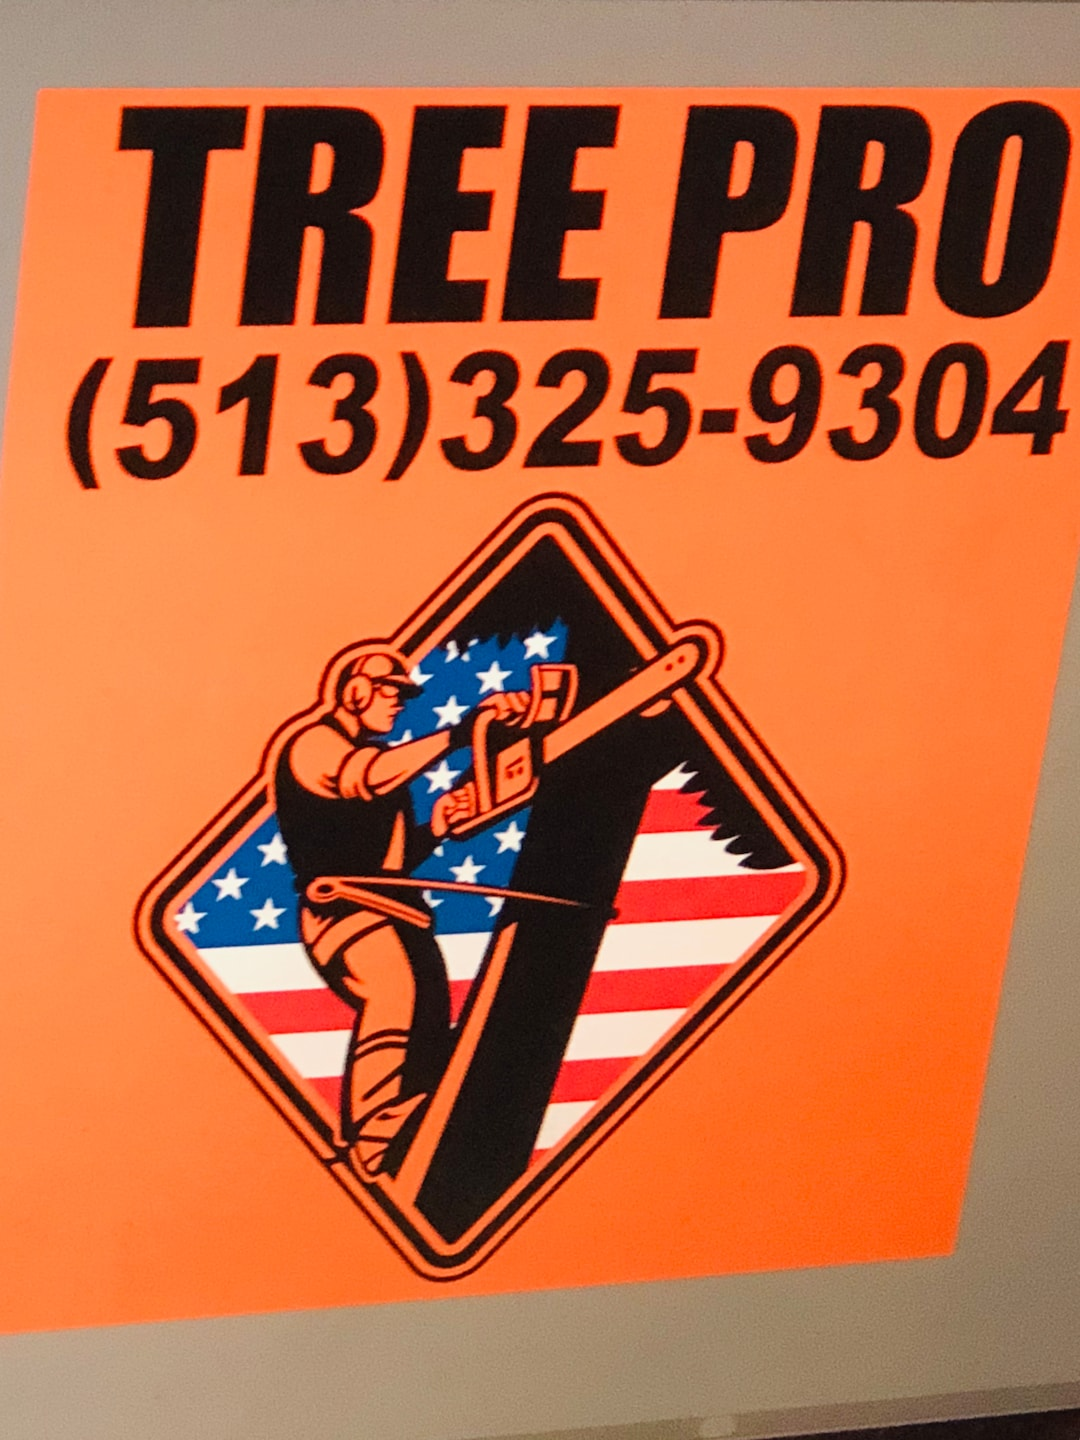 Tree Fix, LLC